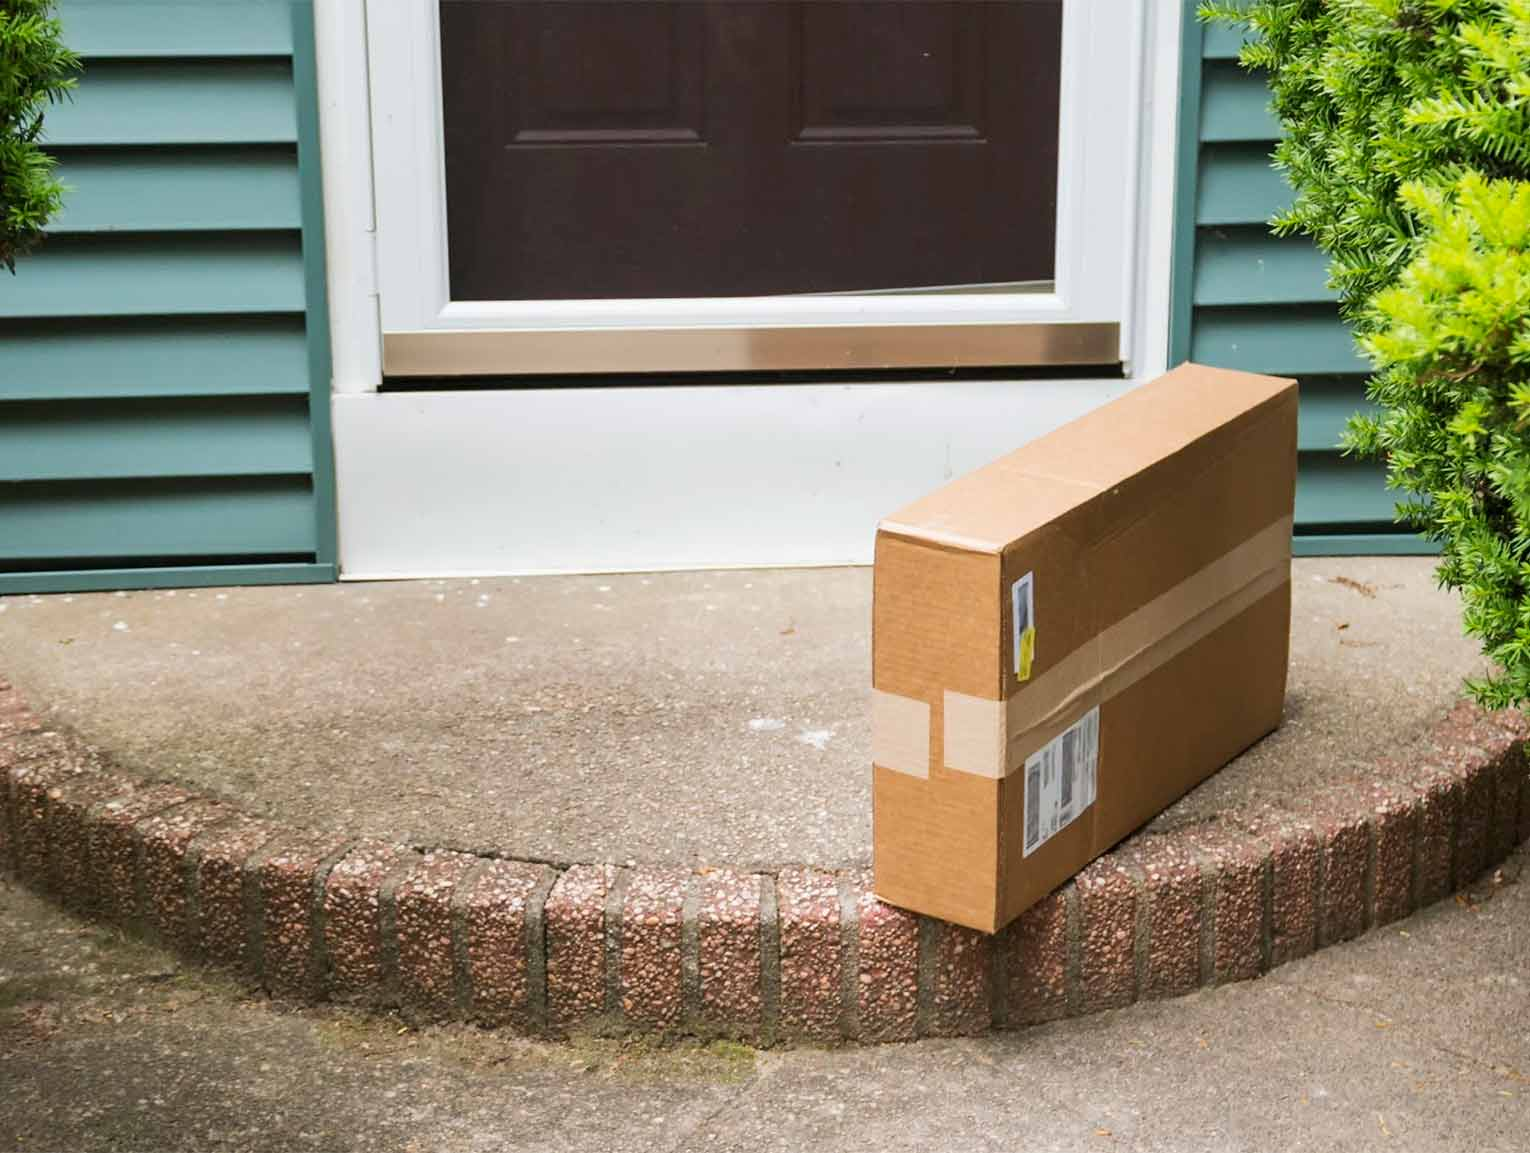 A brown box sits on a front stoop.